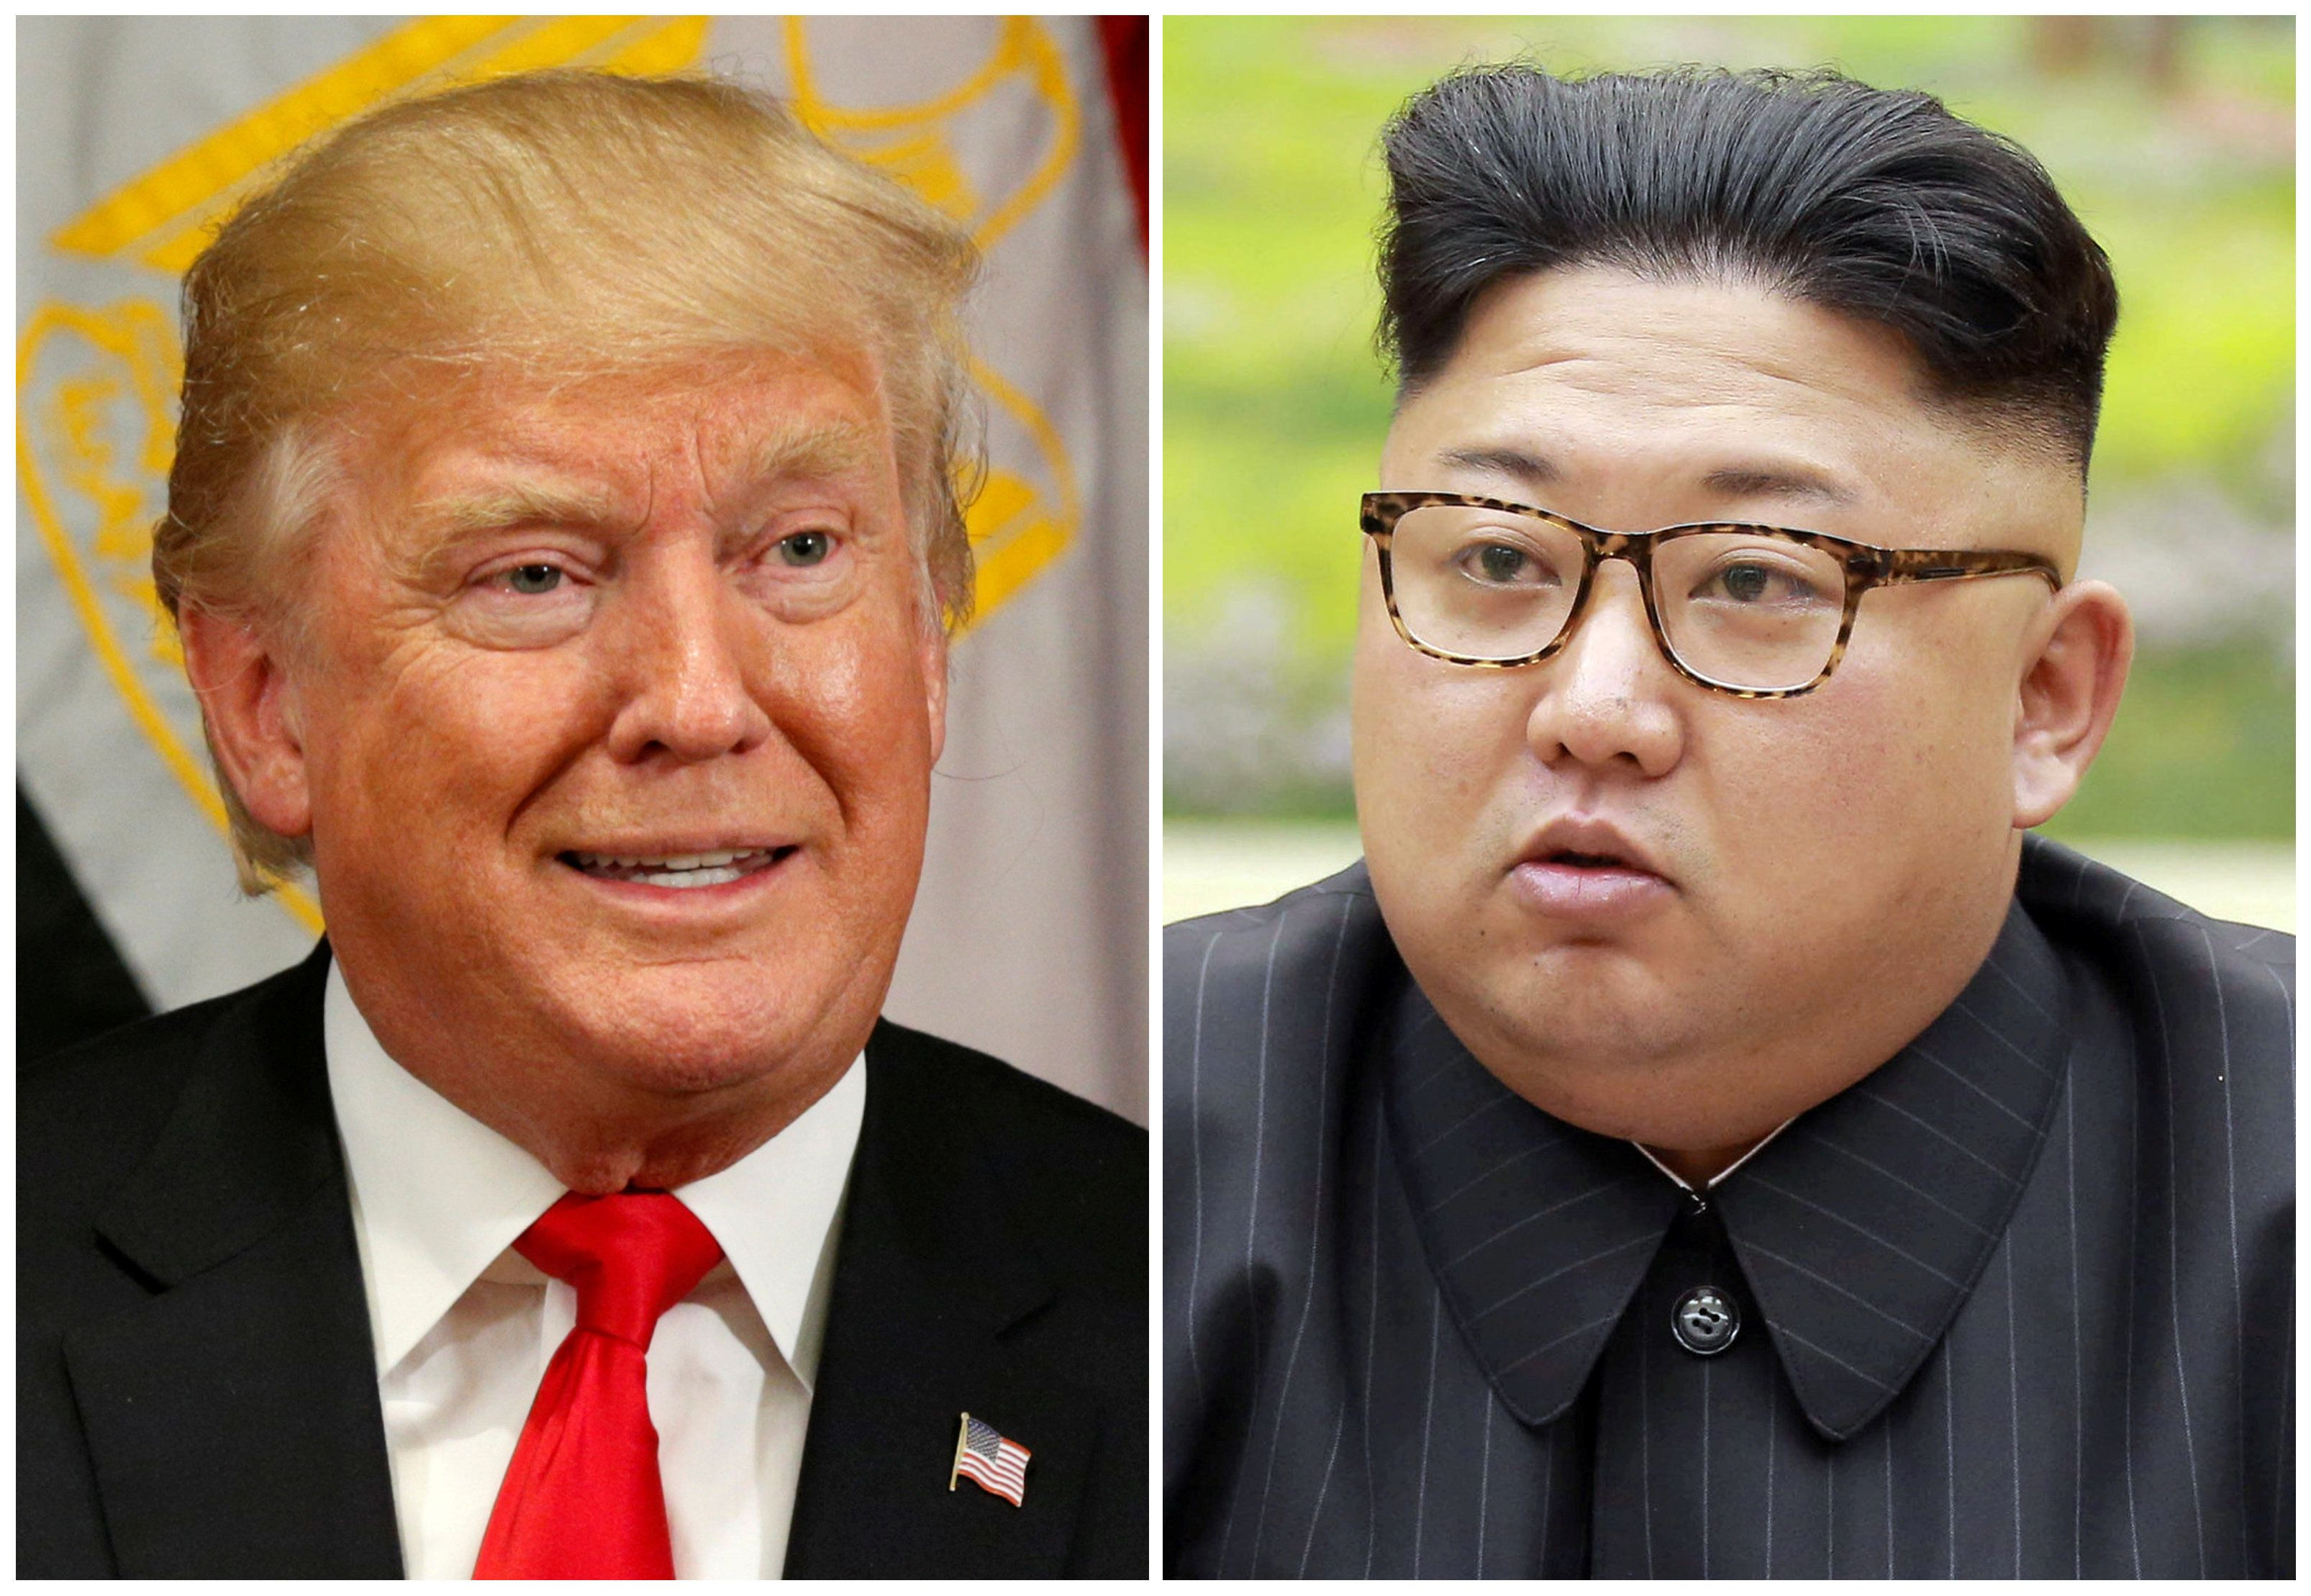 A combination photo shows U.S. President Donald Trump in New York, U.S. September 21, 2017 and North Korean leader Kim Jong Un in this undated photo released by North Korea's Korean Central News Agency (KCNA) in Pyongyang, September 4, 2017.  REUTERS/Kevin Lamarque, KCNA/Handout via REUTERS/File Photos